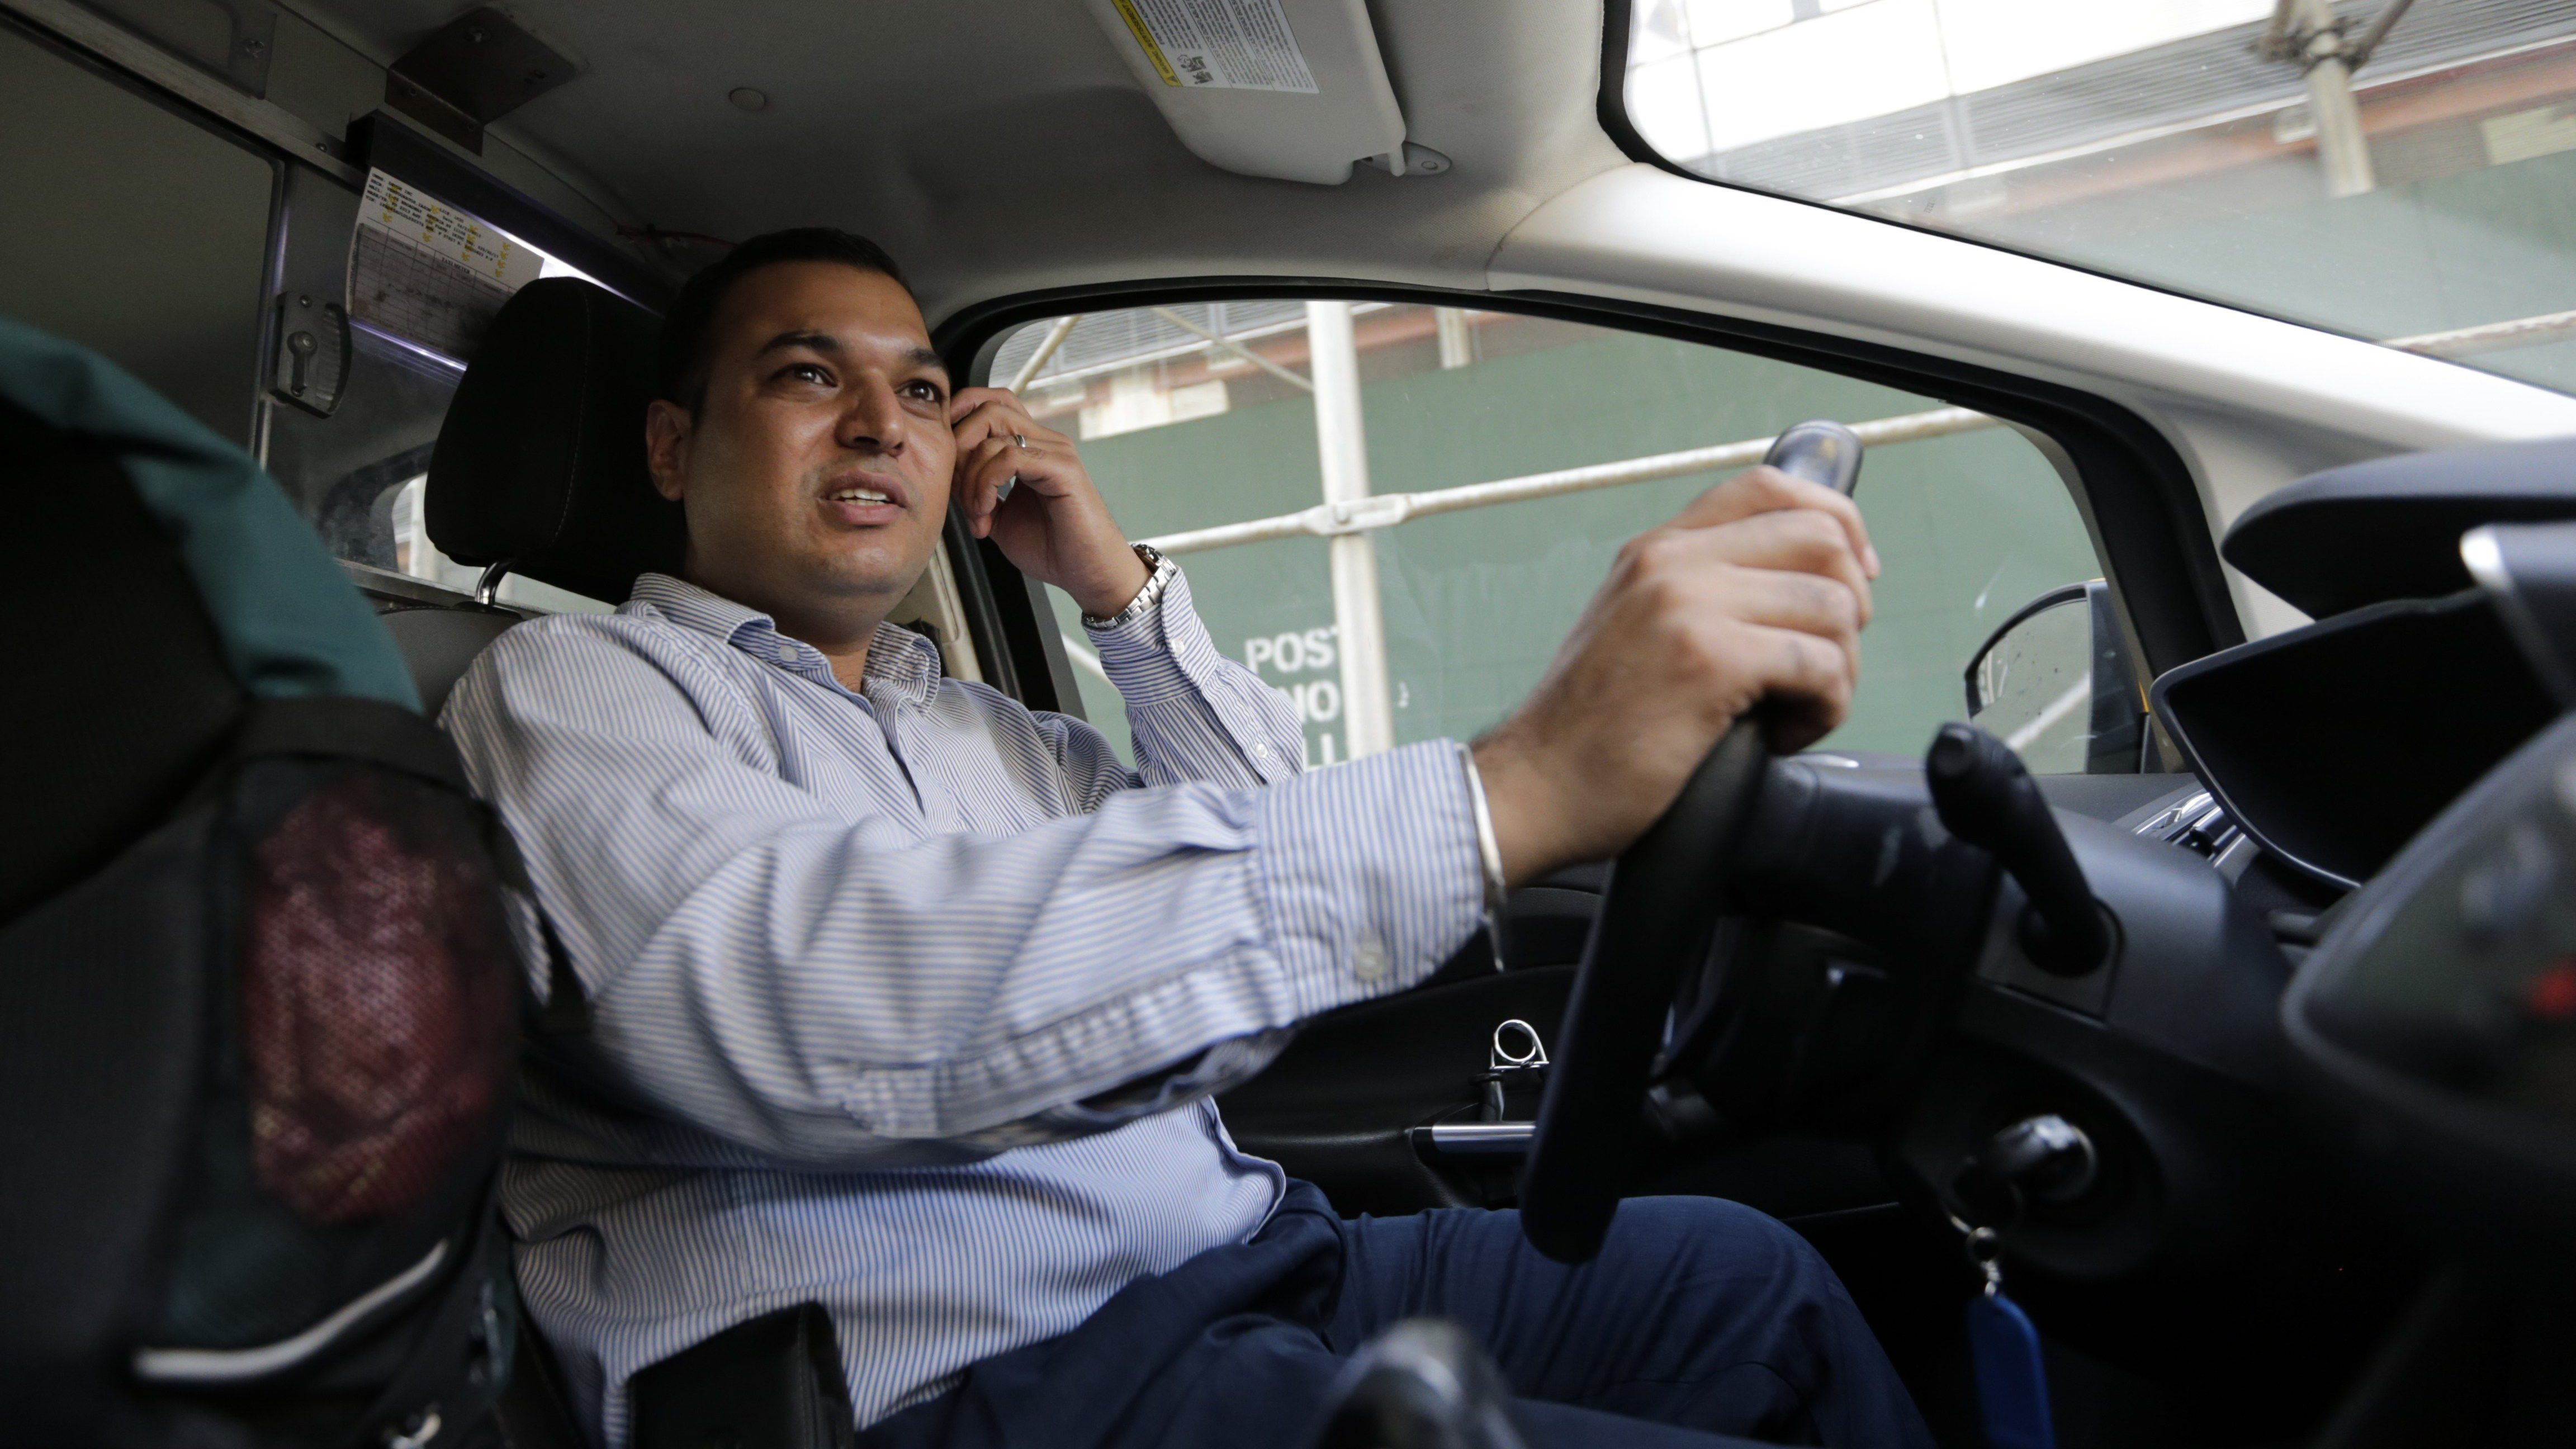 In this July 21, 2015 photo, yellow cab driver Jatinder Singh drives his taxi in New York. Singh owned a yellow cab, which he decided to paint black so he could start driving with Uber. He lasted about six months before he sold the car and returned to taxi driving. (AP Photo/Frank Franklin II)